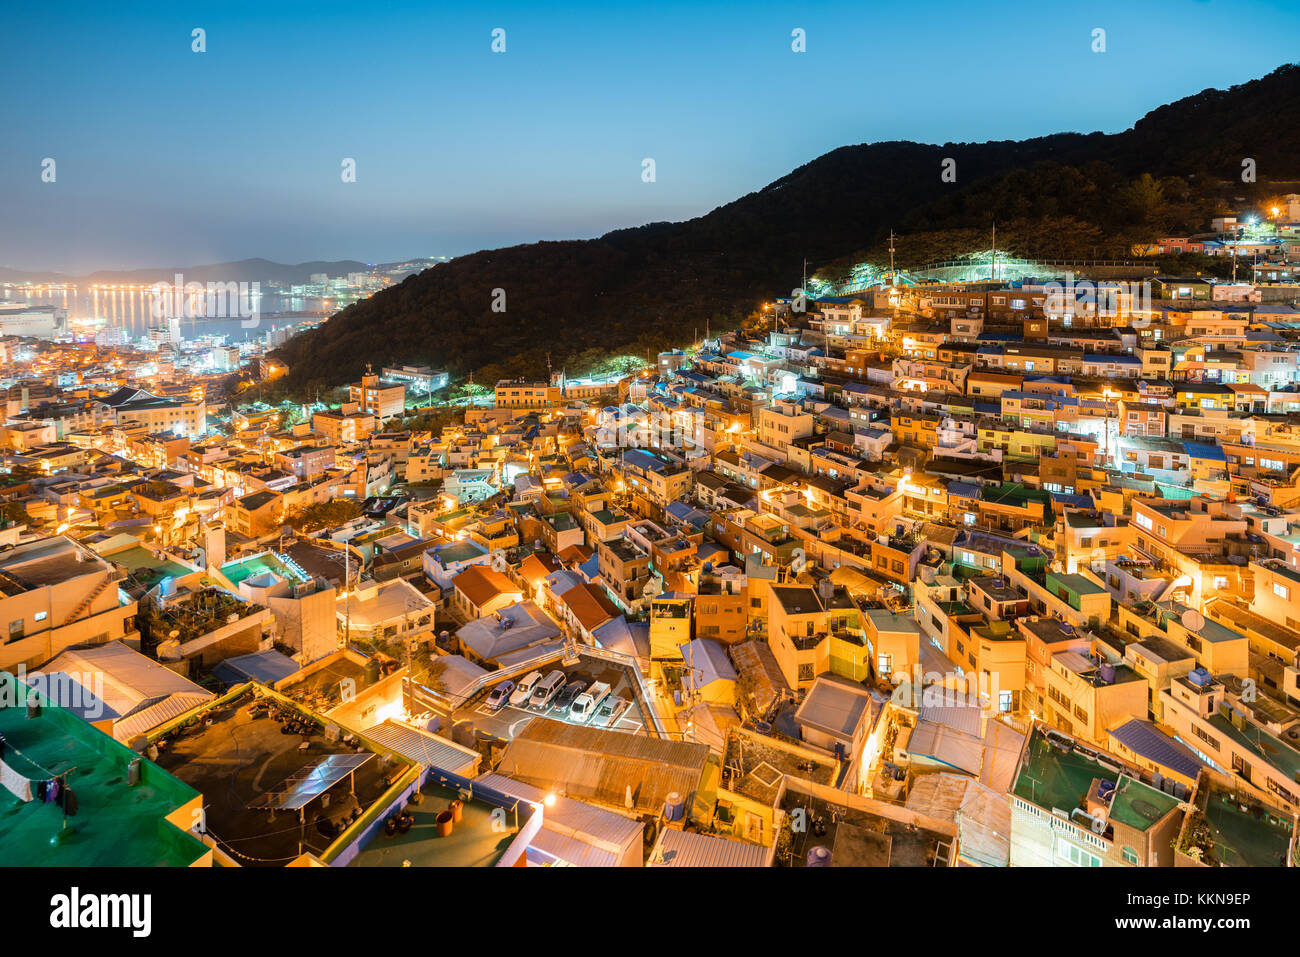 Gamcheon Culture Village at night in Busan, South Korea. - Stock Image